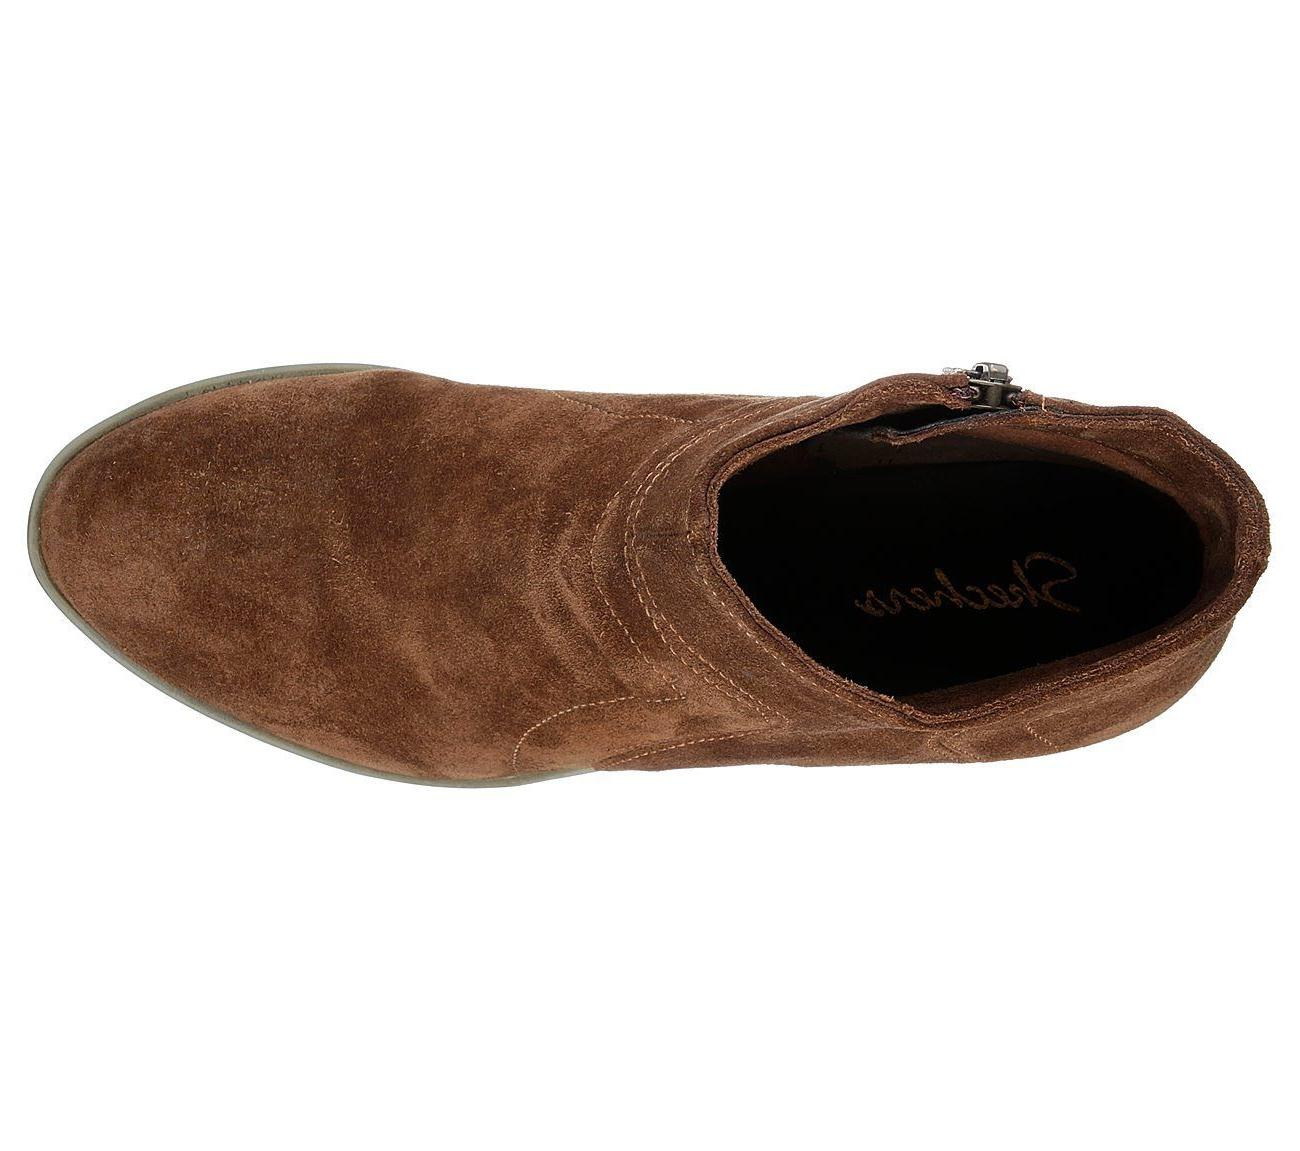 New Womens Skechers Suede Ankle Boots 48719 Brown 112G